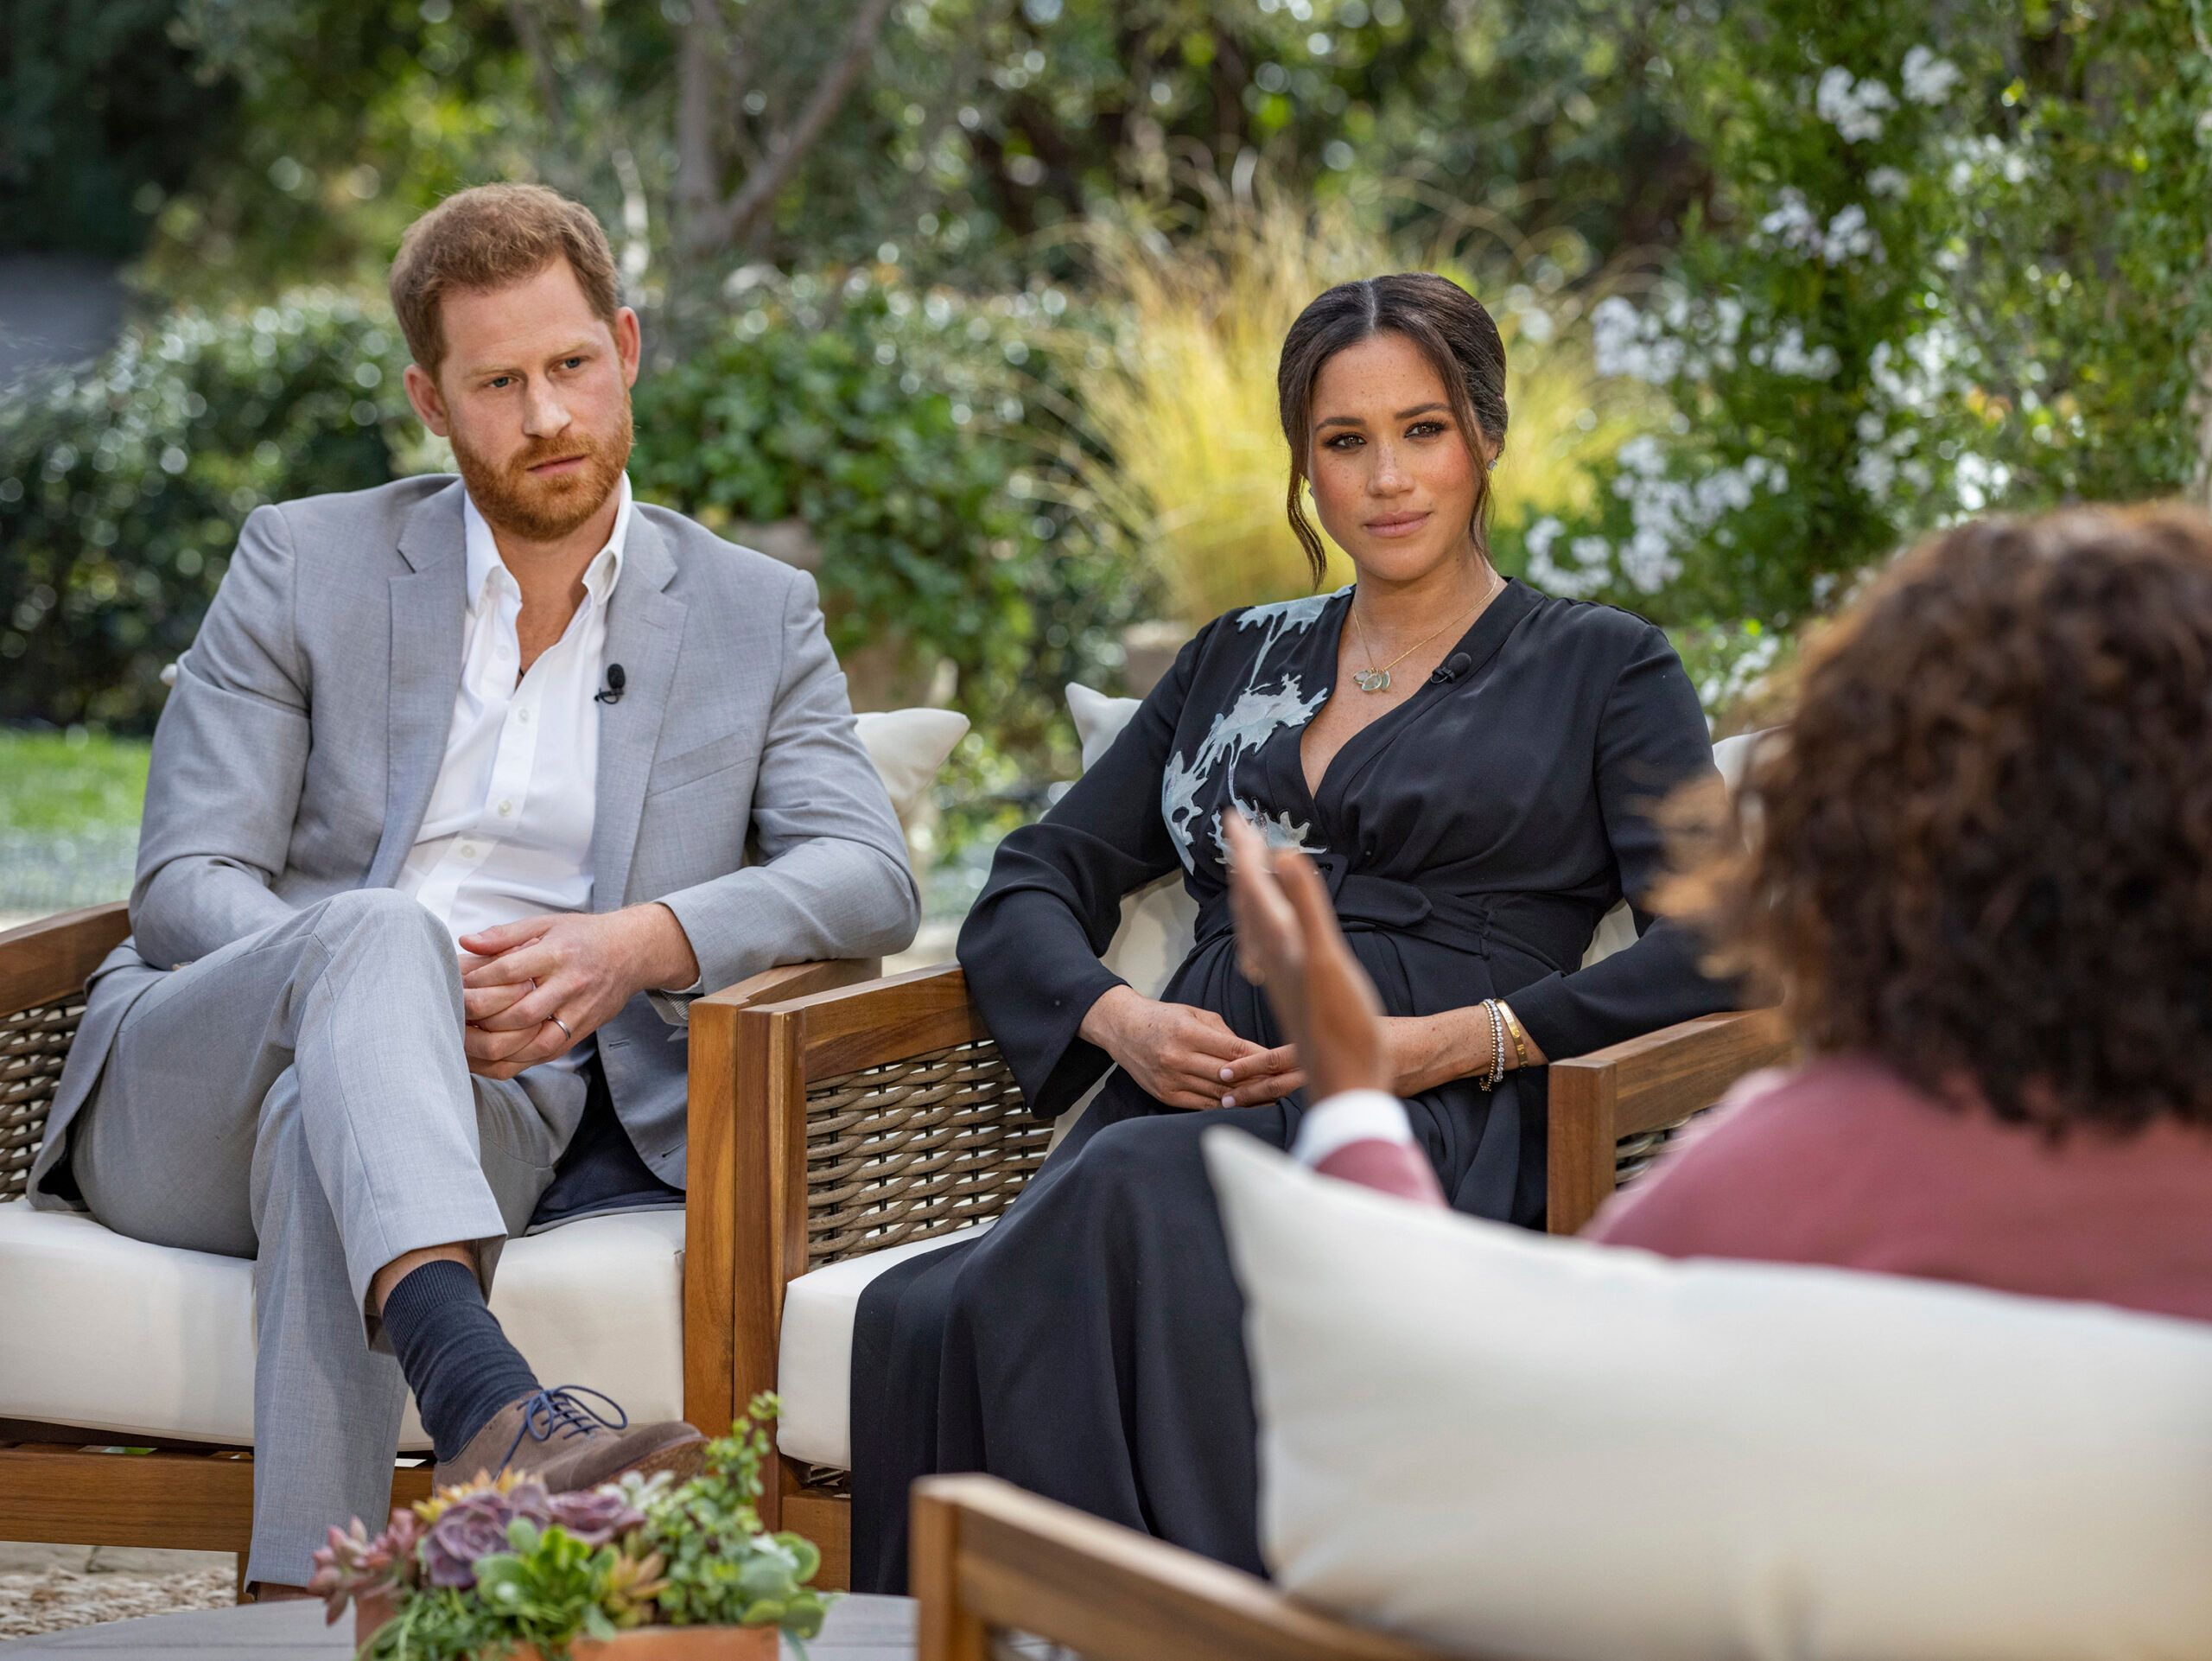 Stunning Revelations From Prince Harry And Meghan Markle's Oprah Interview - Fame10